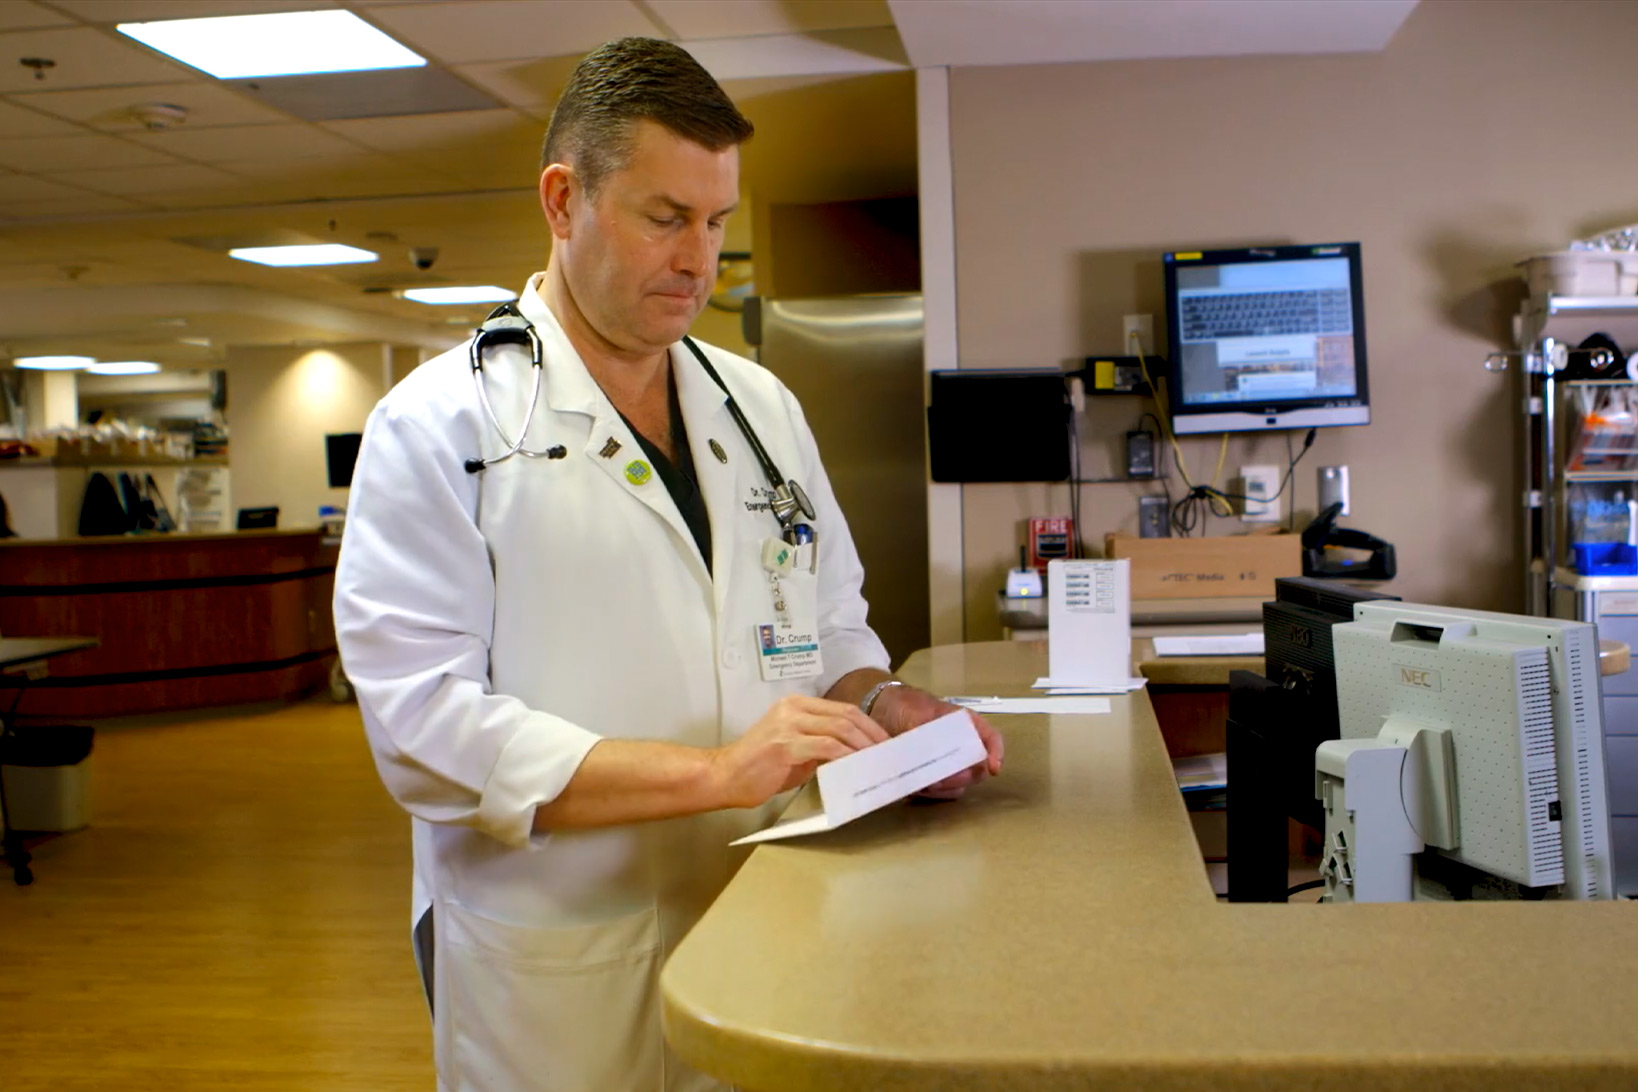 Dr. Todd Crump at work, standing at the clinic desk reading a medical pamphlet.